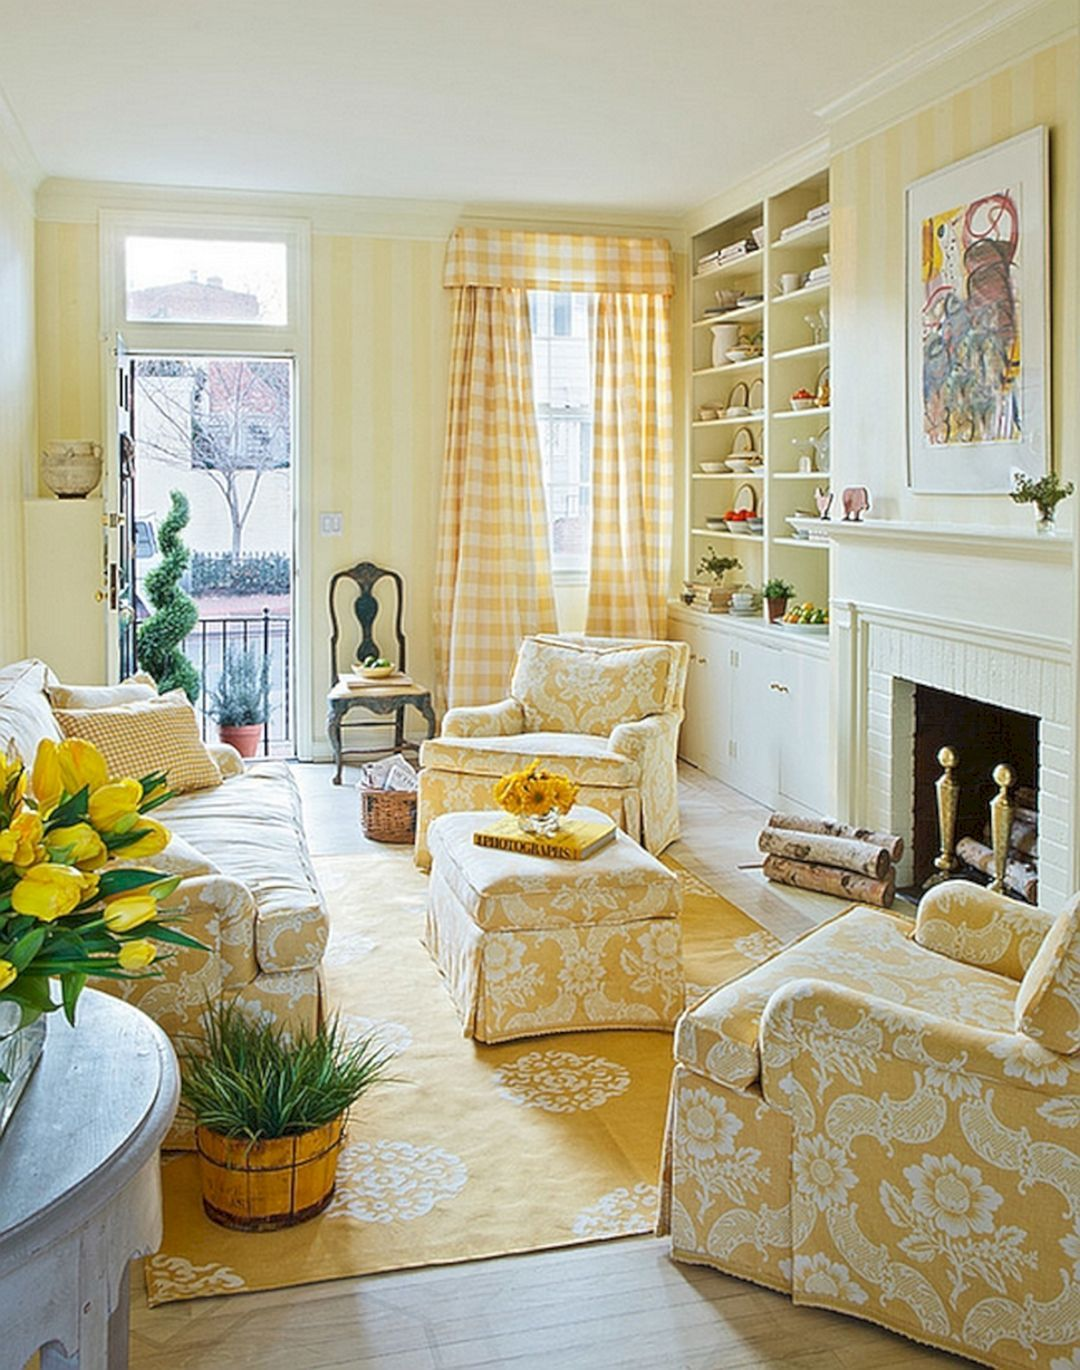 25 Yellow Traditional Living Room Design For Elegant Room Ideas